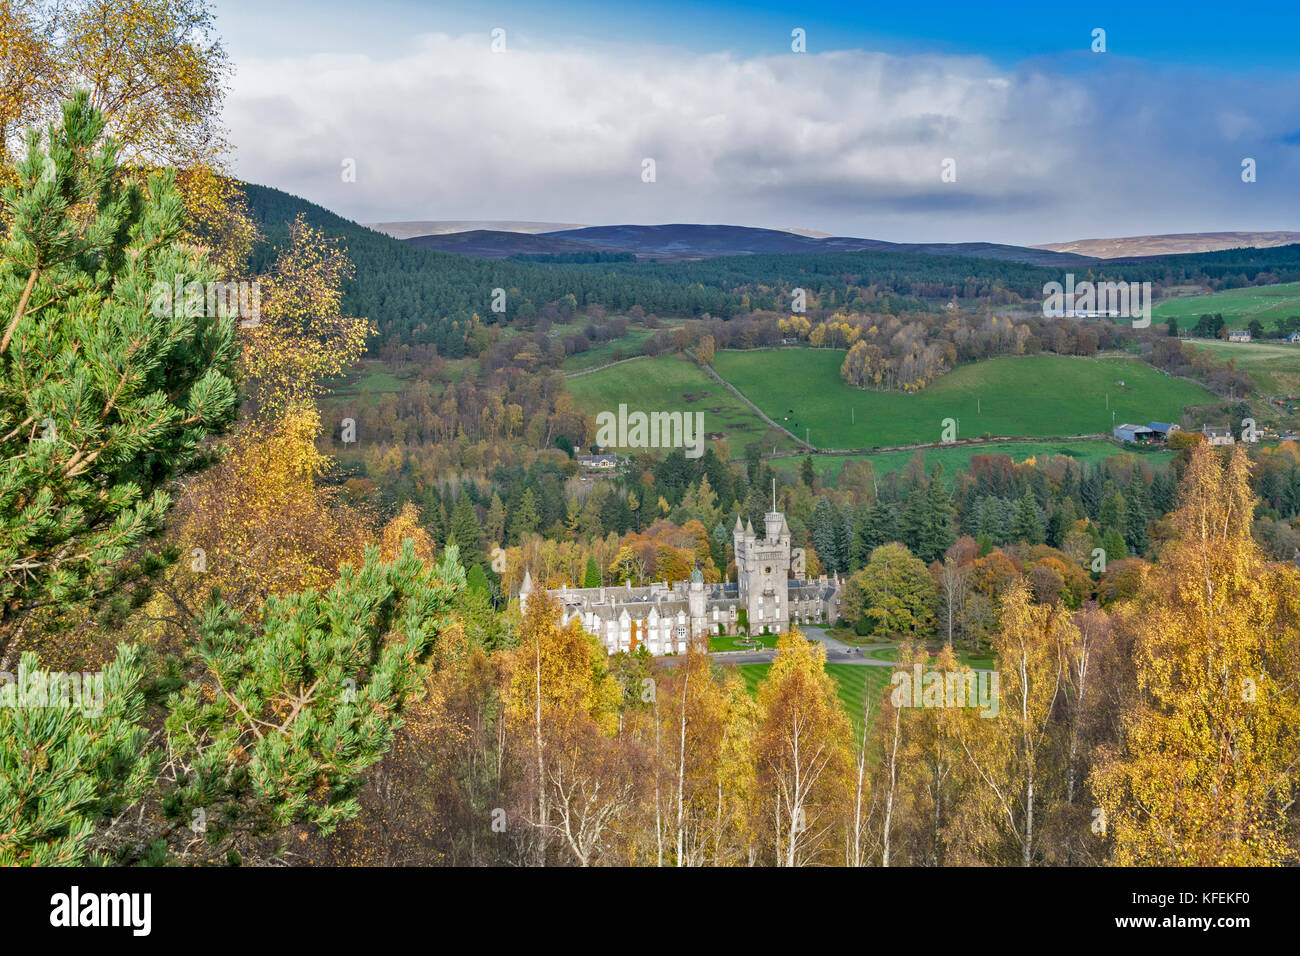 BALMORAL CASTLE ROYAL DEESIDE ABERDEENSHIRE SCOTLAND SUNLIGHT ON THE CASTLE  BIRCH TREES WITH AUTUMN LEAVES FARMS - Stock Image